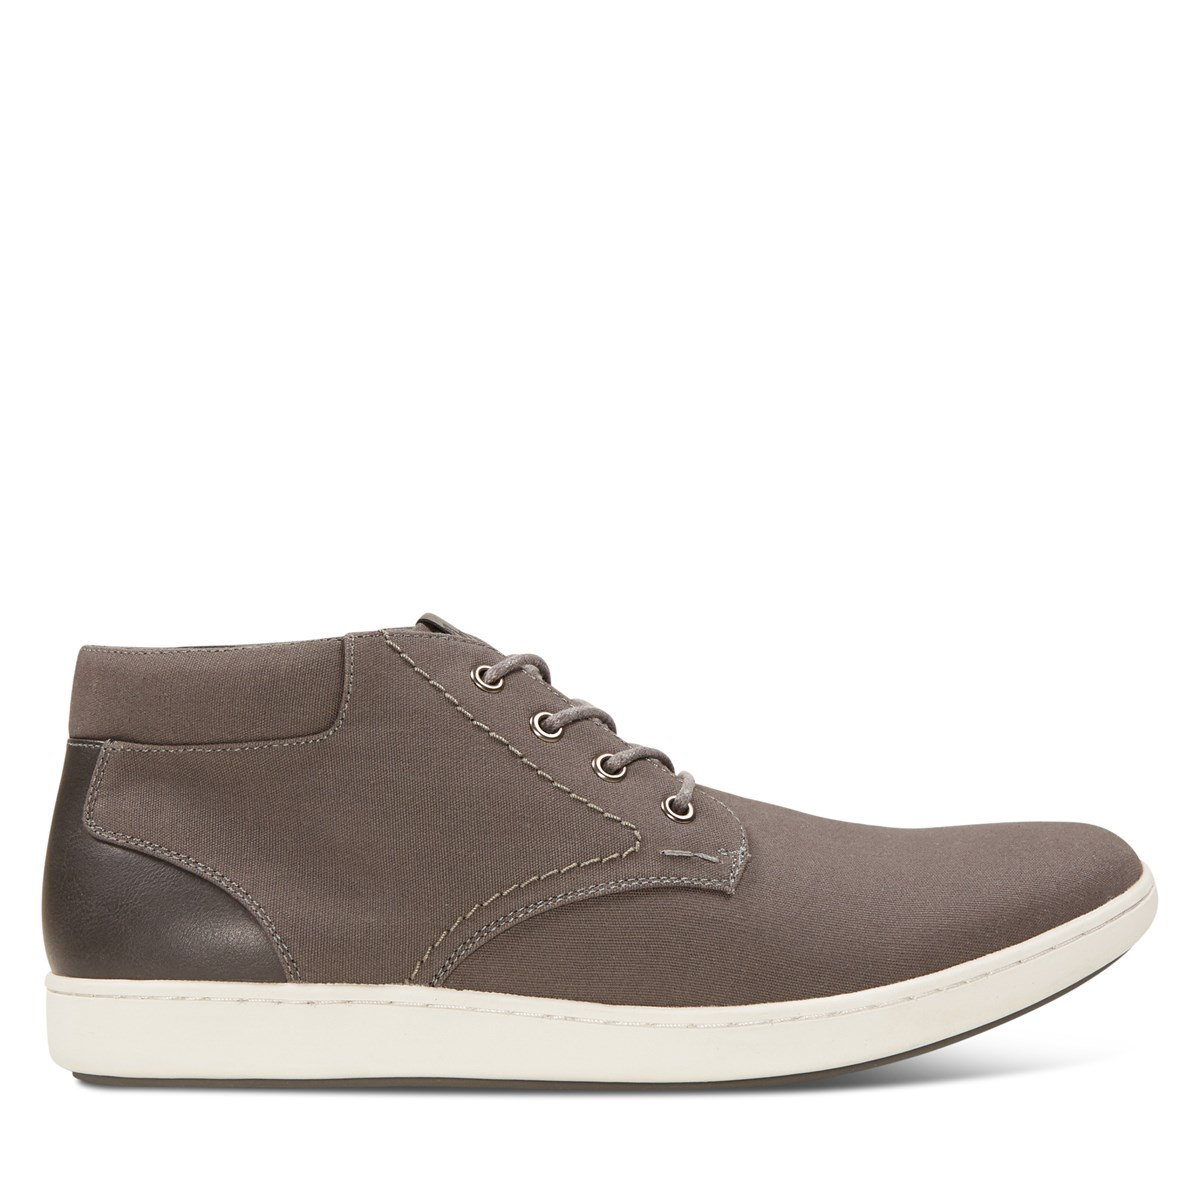 Men's Milo Shoes in Grey